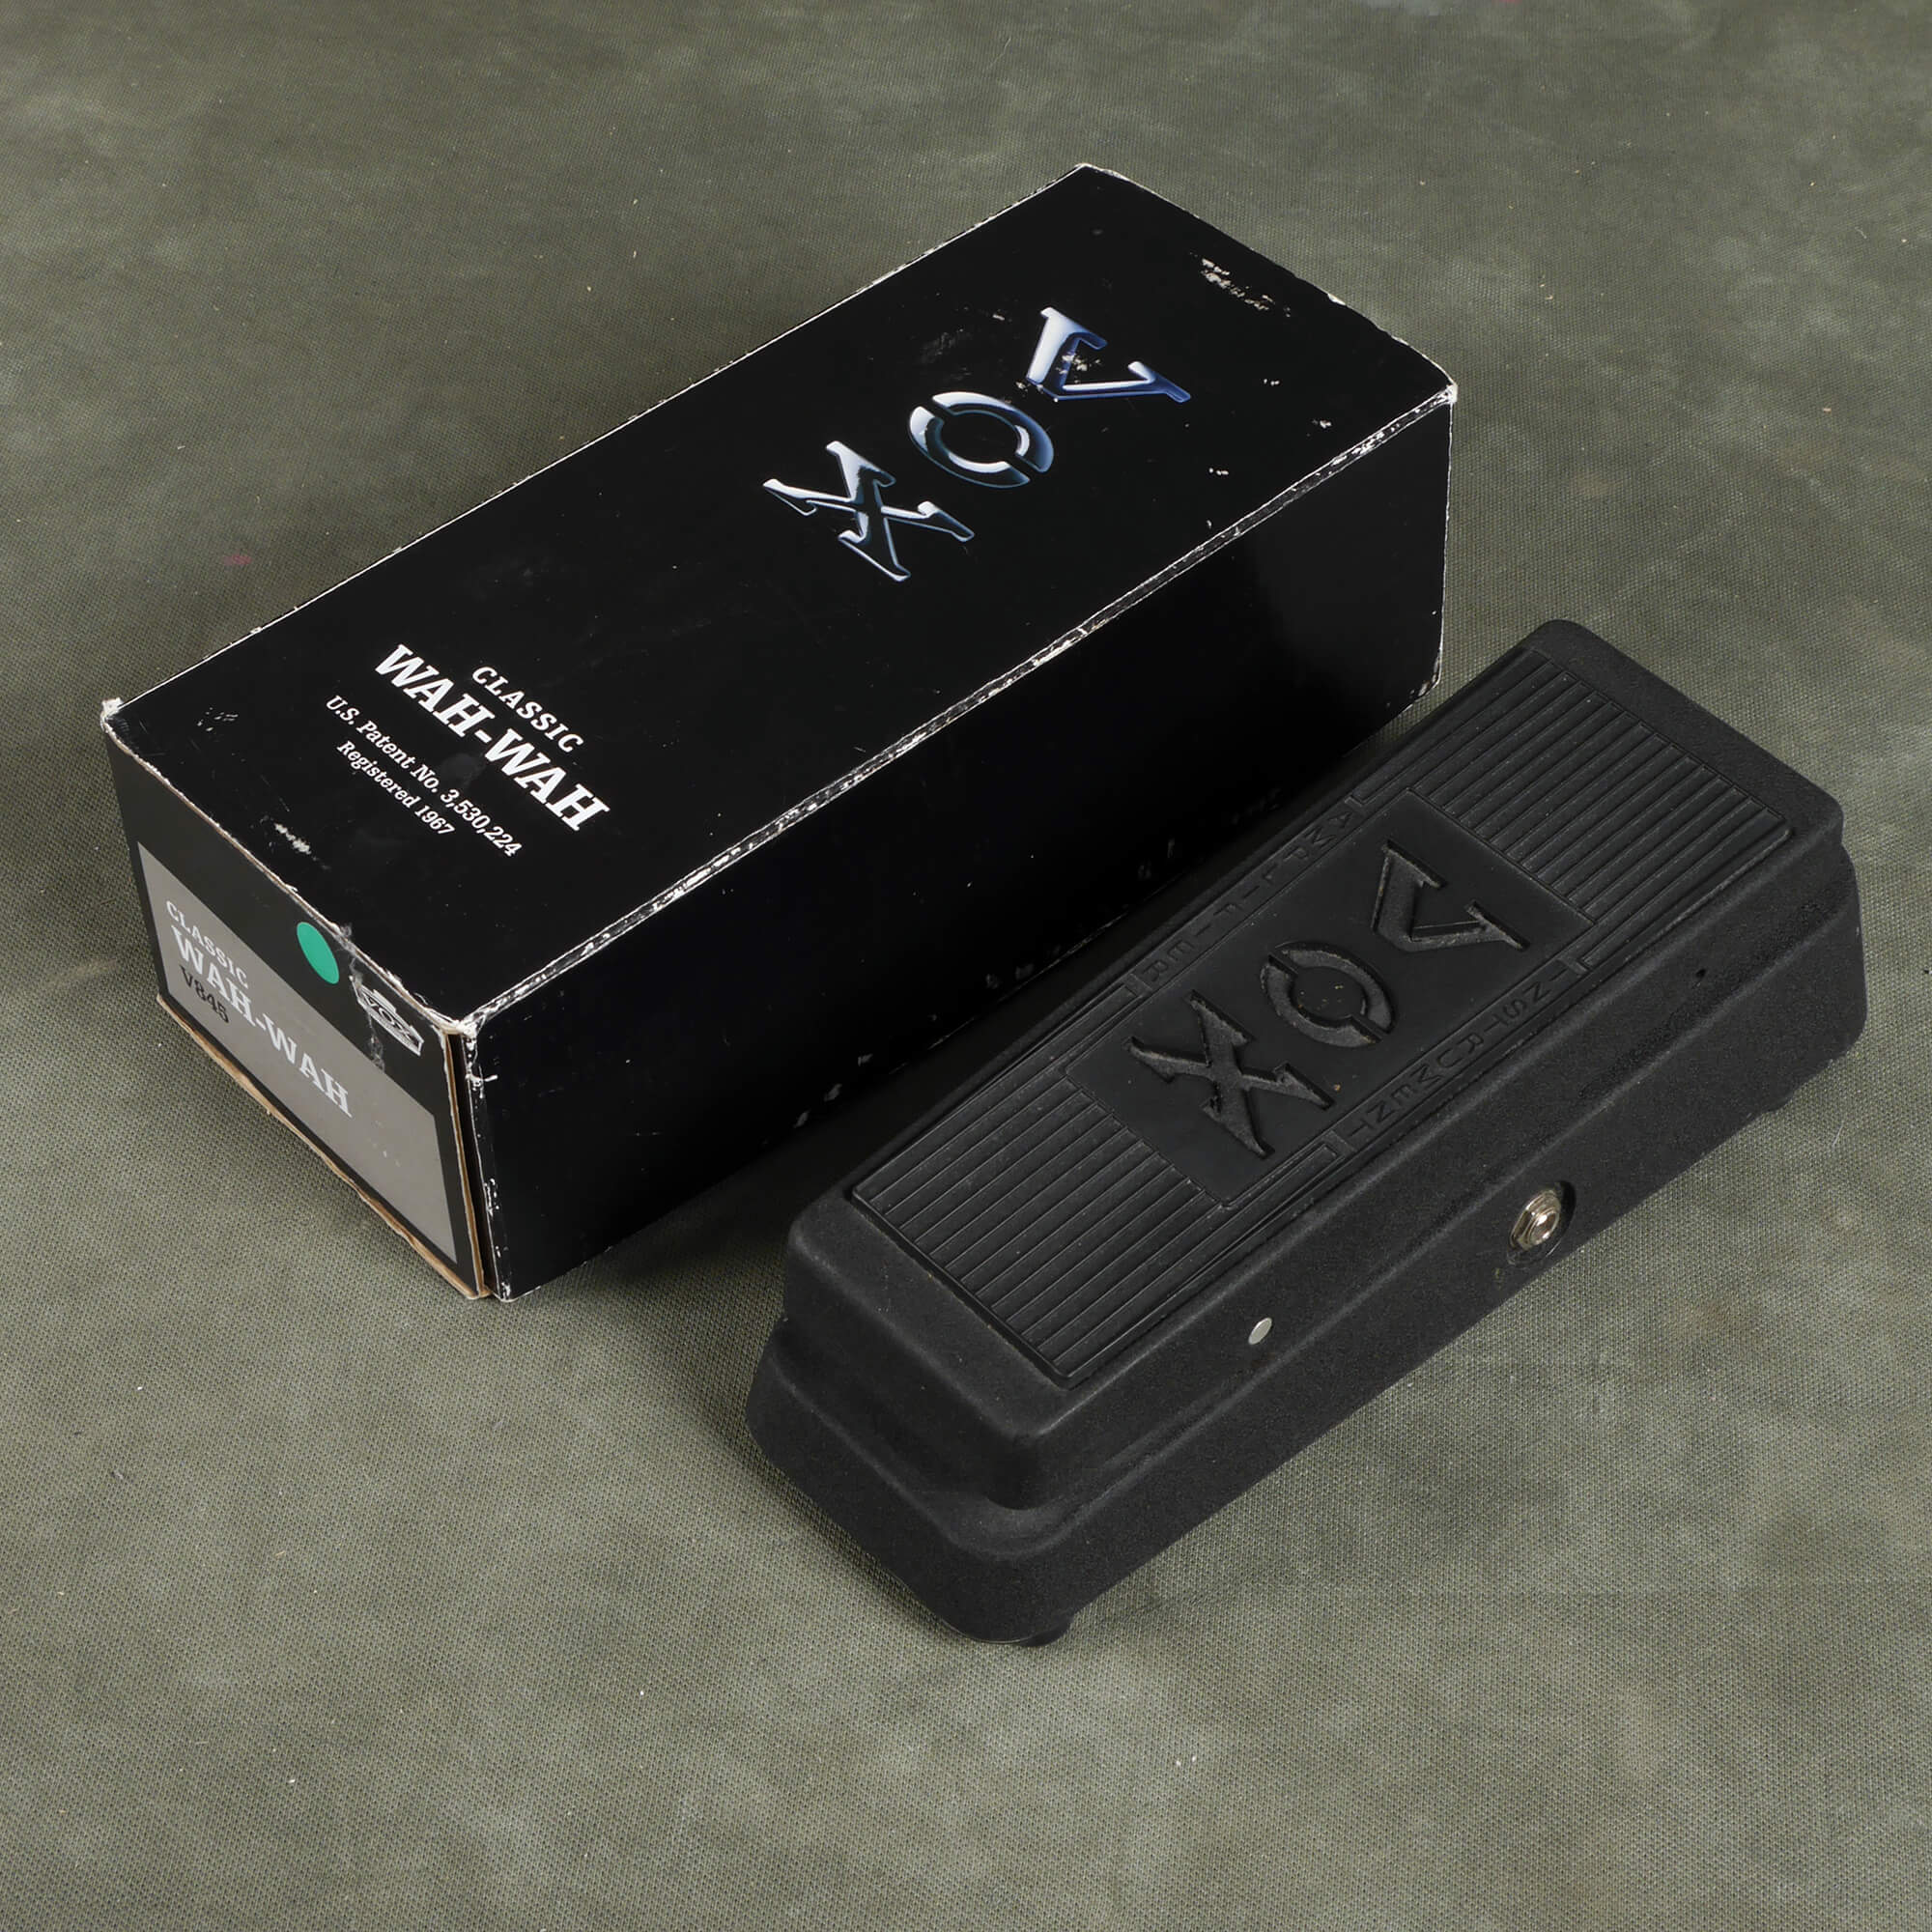 Vox V845 Classic Wah Wah FX Pedal w/Box - 2nd Hand